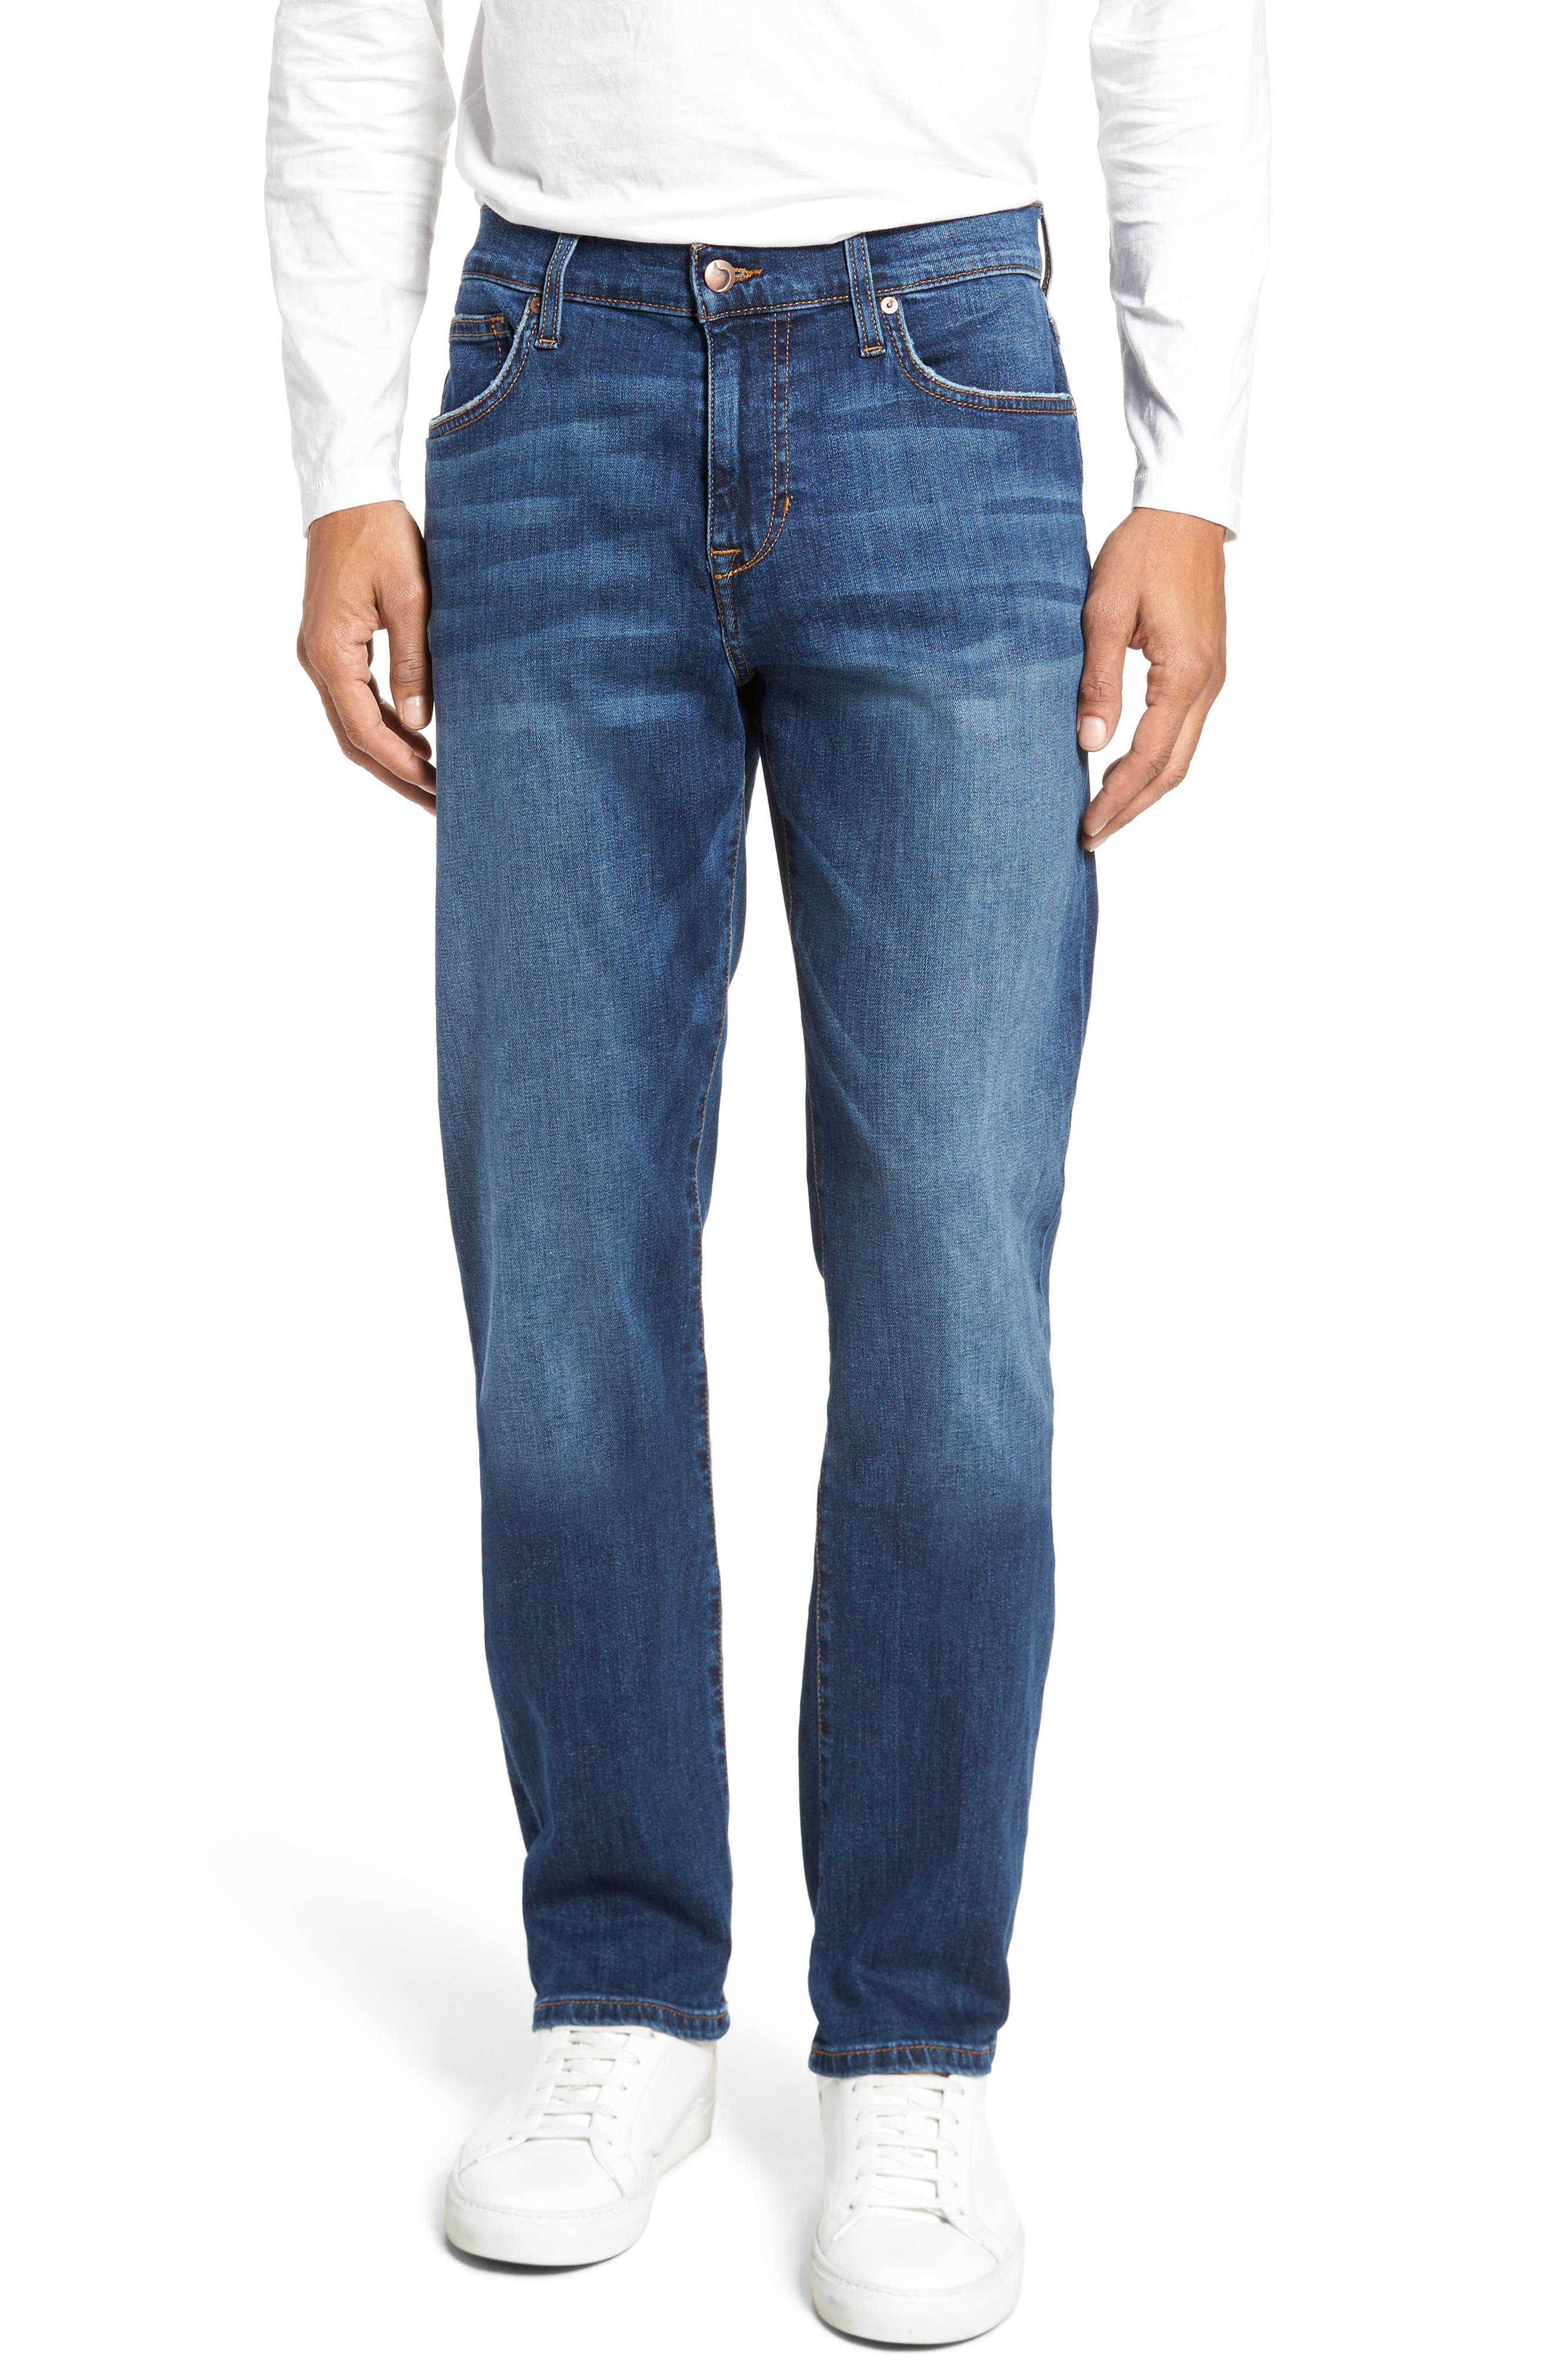 Brixton Slim Straight Fit Jeans,                         Main,                         color, BRADLEE